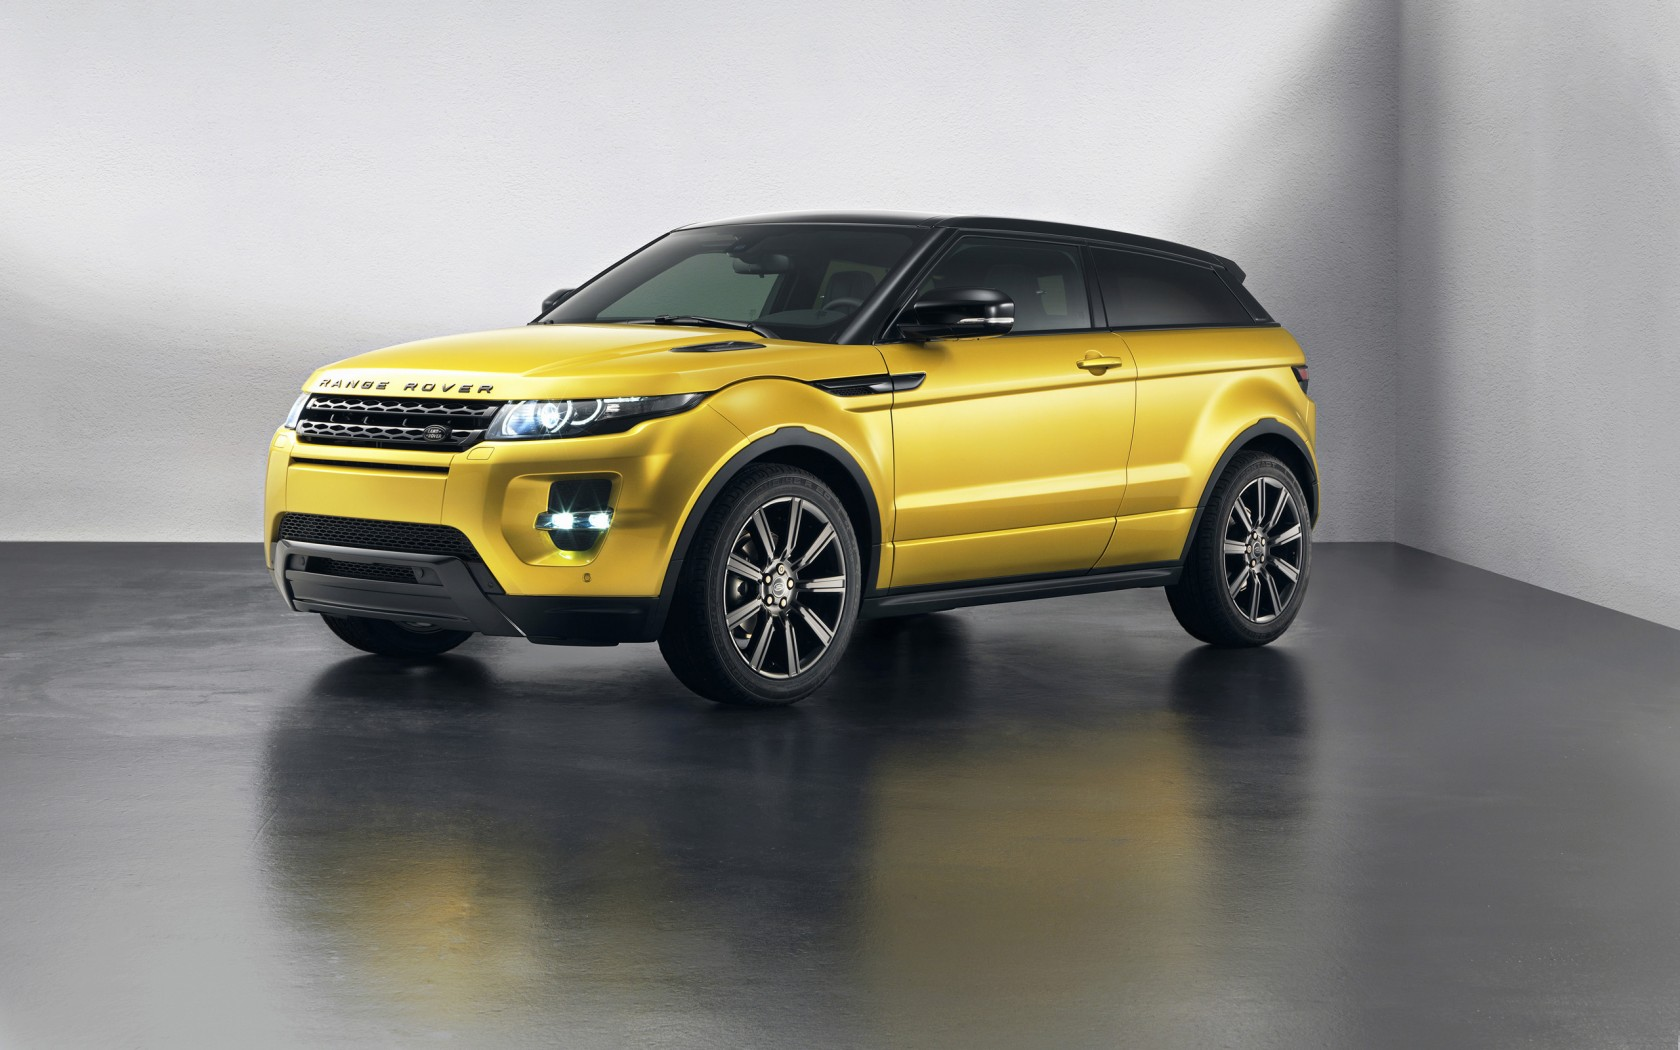 2013 land rover range rover evoque special edition. Black Bedroom Furniture Sets. Home Design Ideas